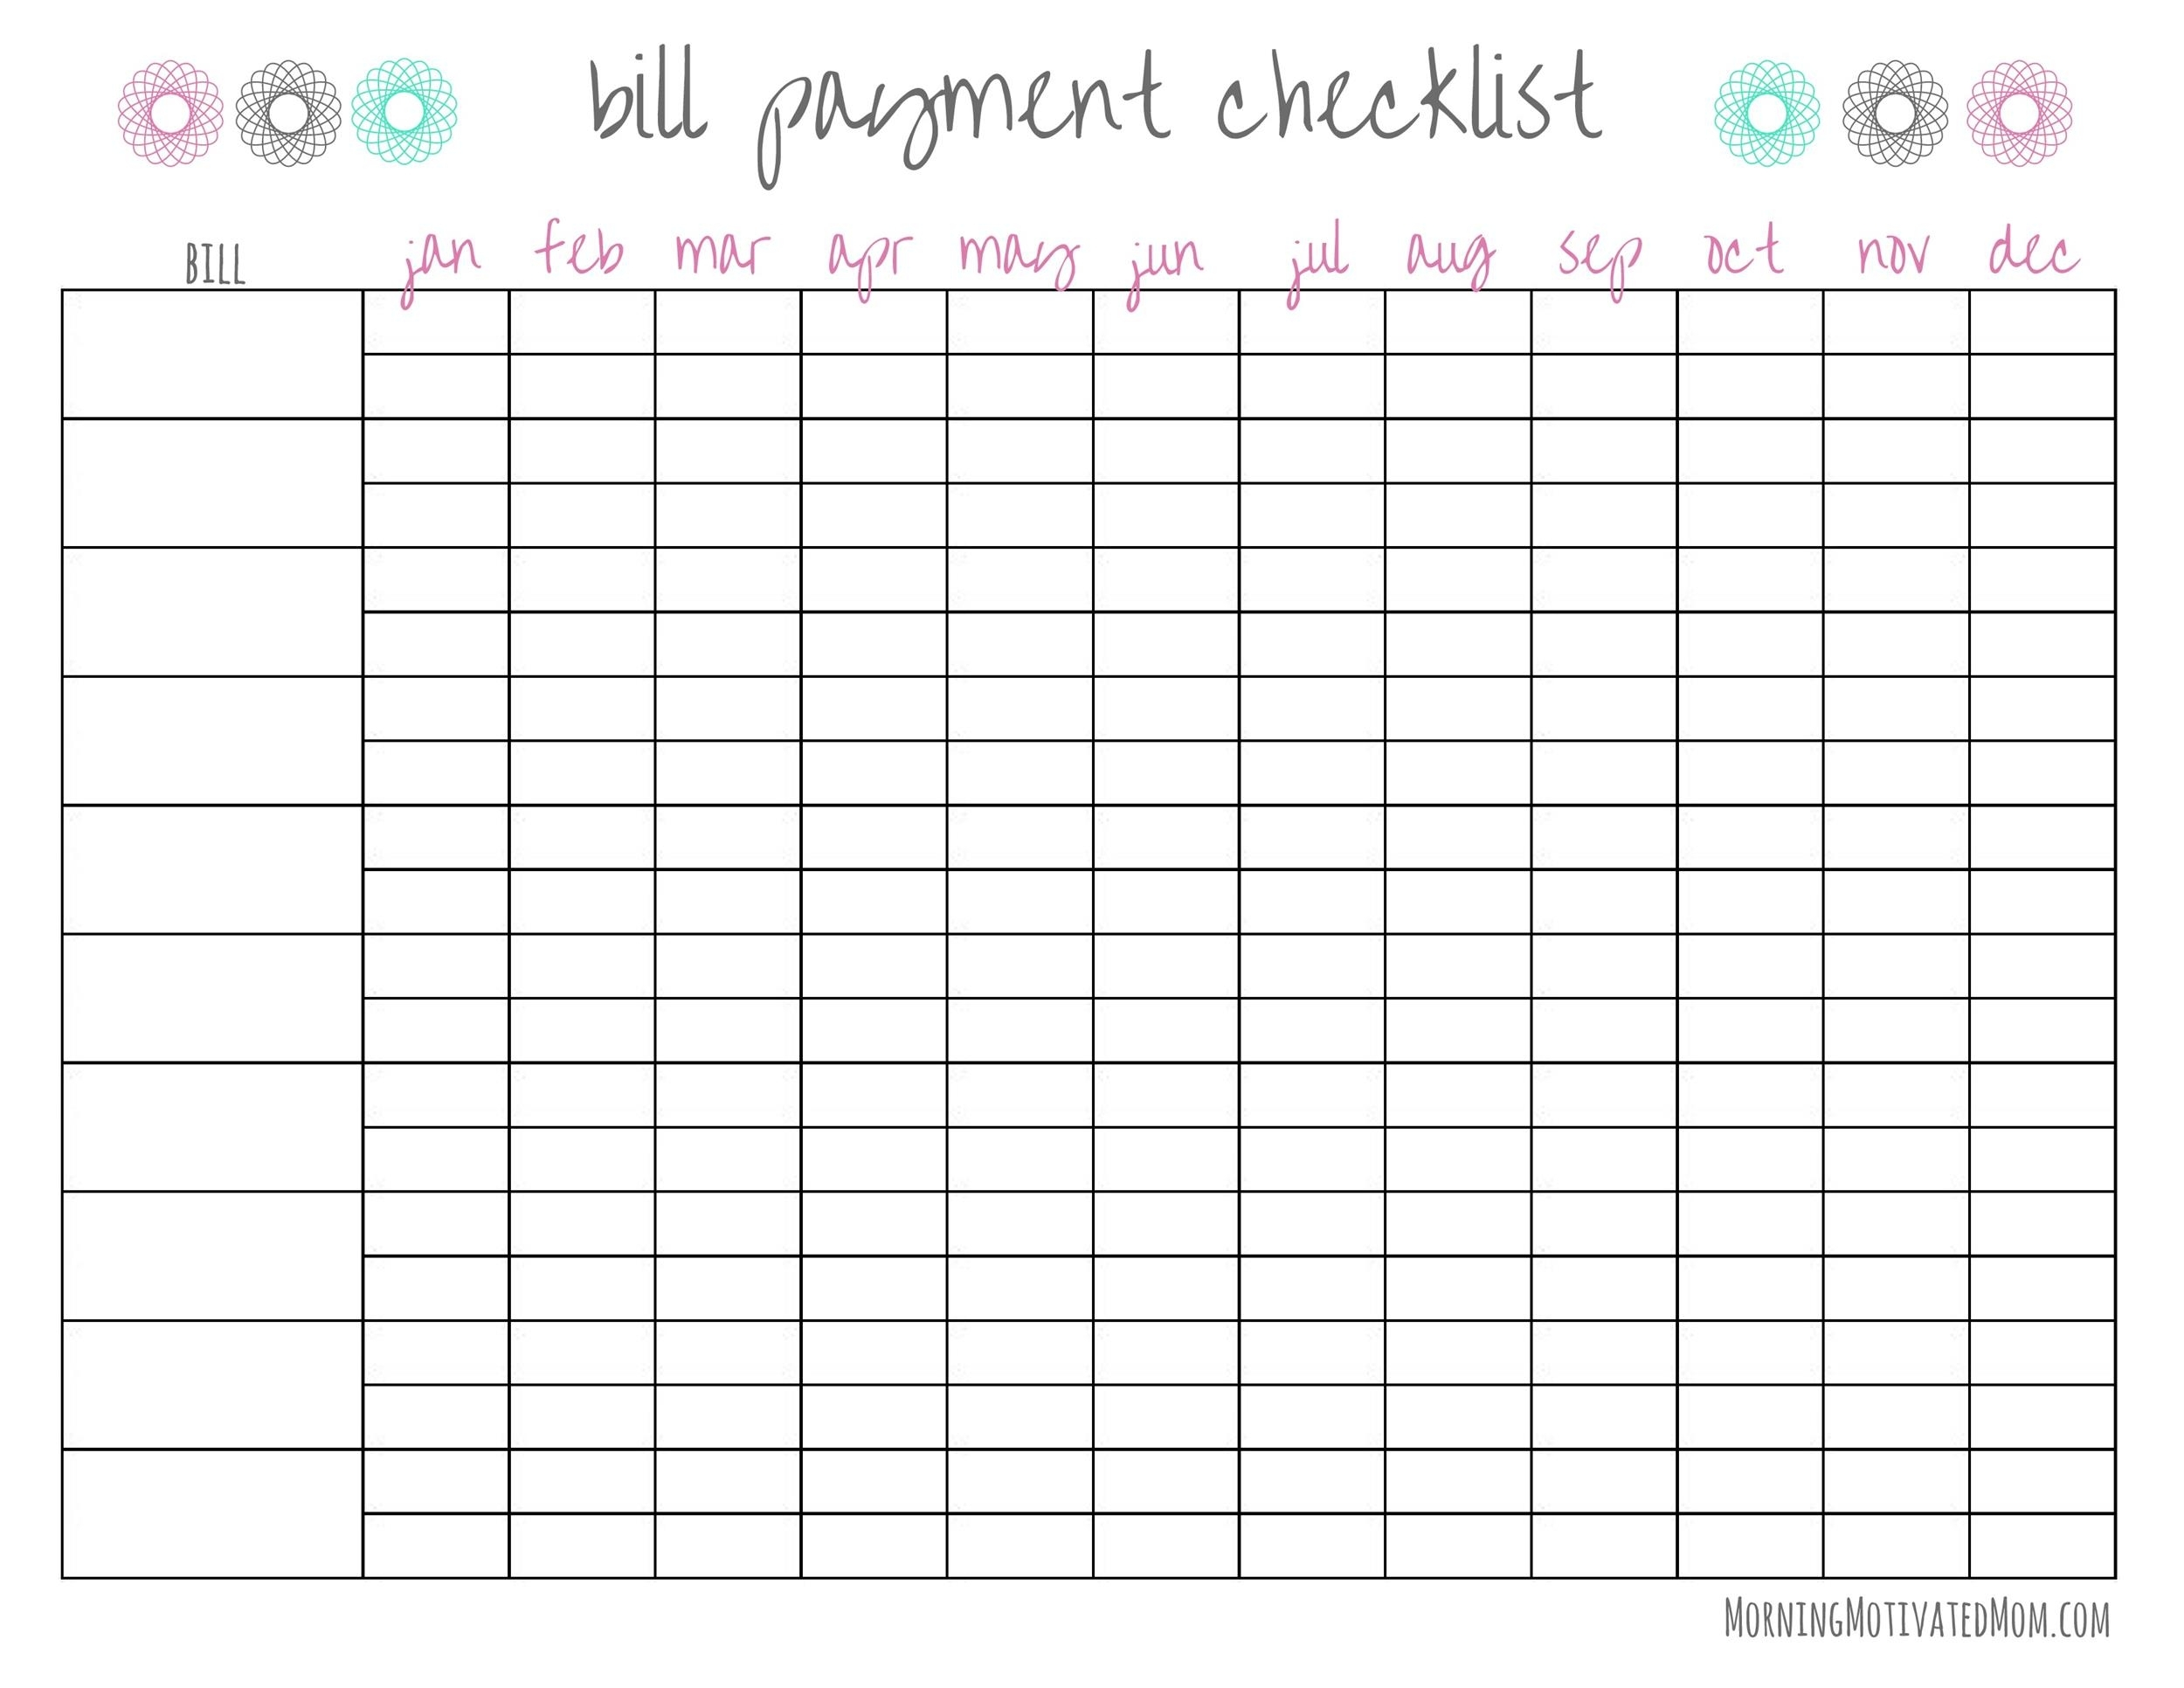 Take Blank Monthly Bill Payment Worksheet